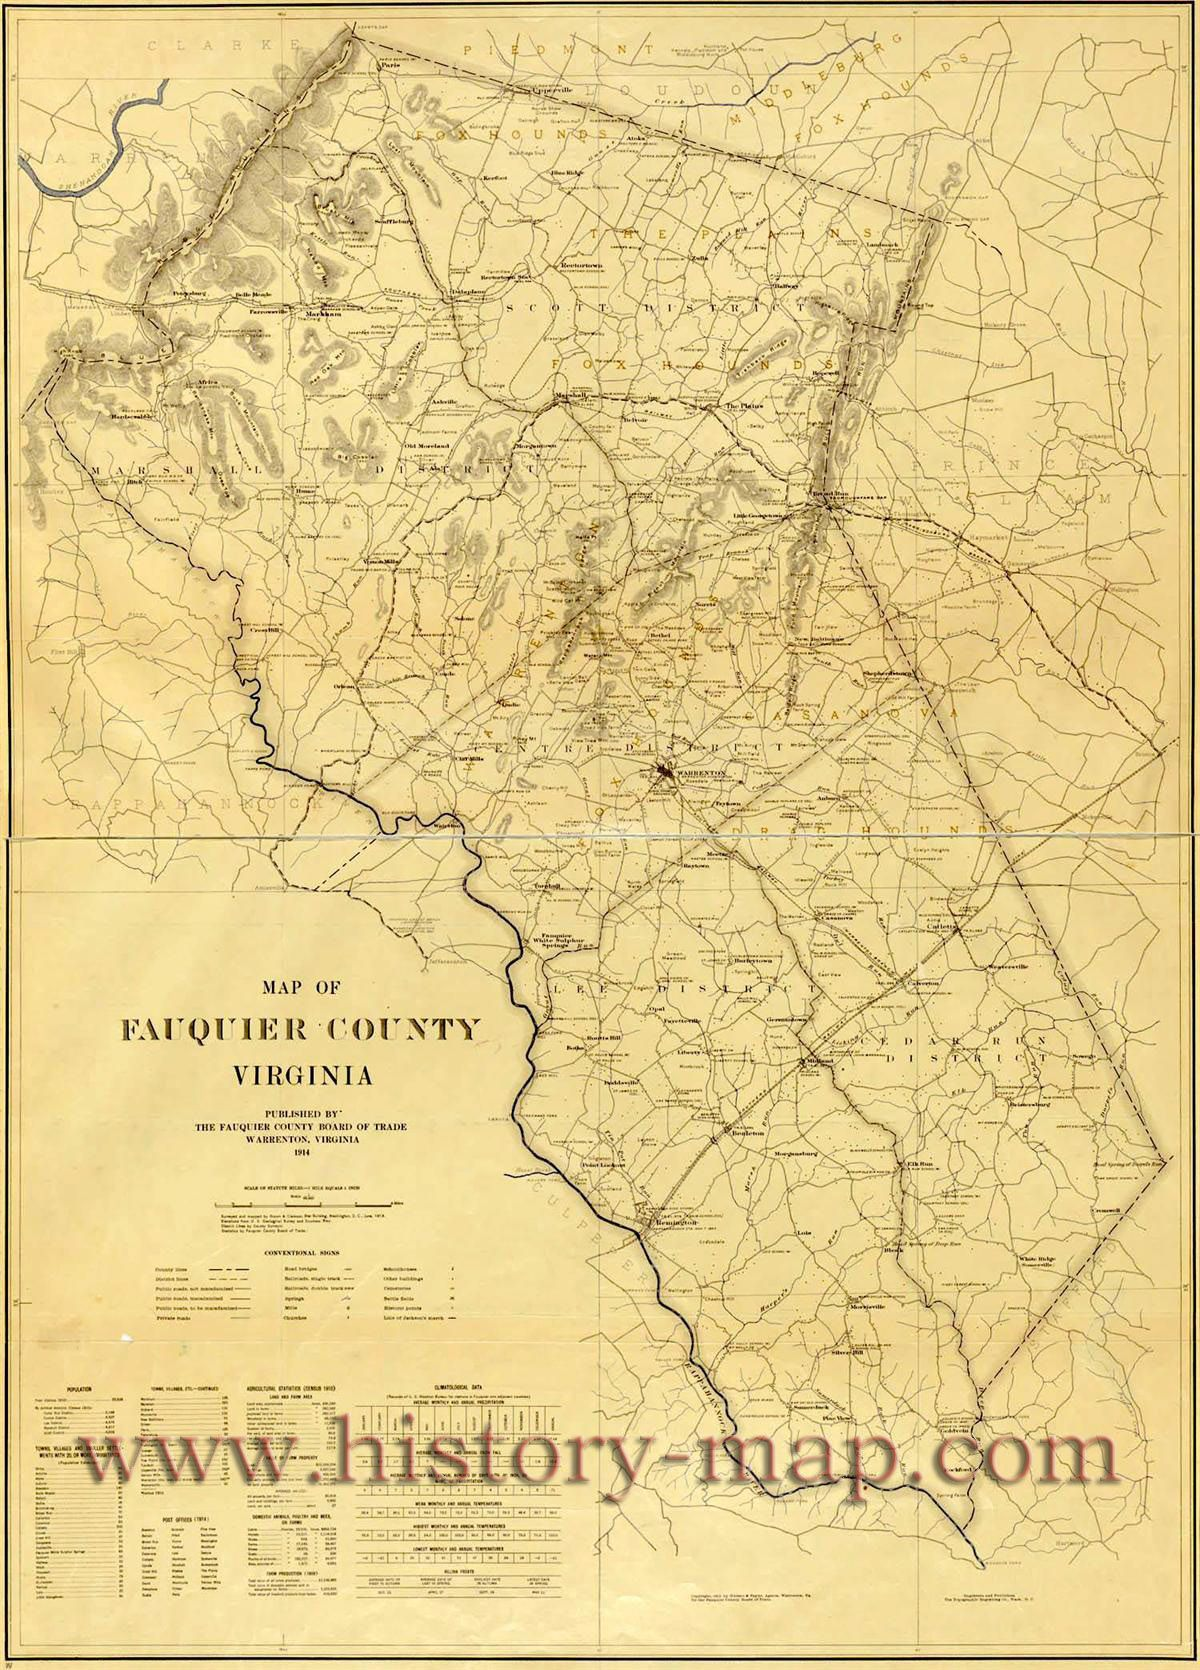 Map of Fauquier County - VA, U.S.A. | JO-From Here And There ... Map Of Fauquier County Va on